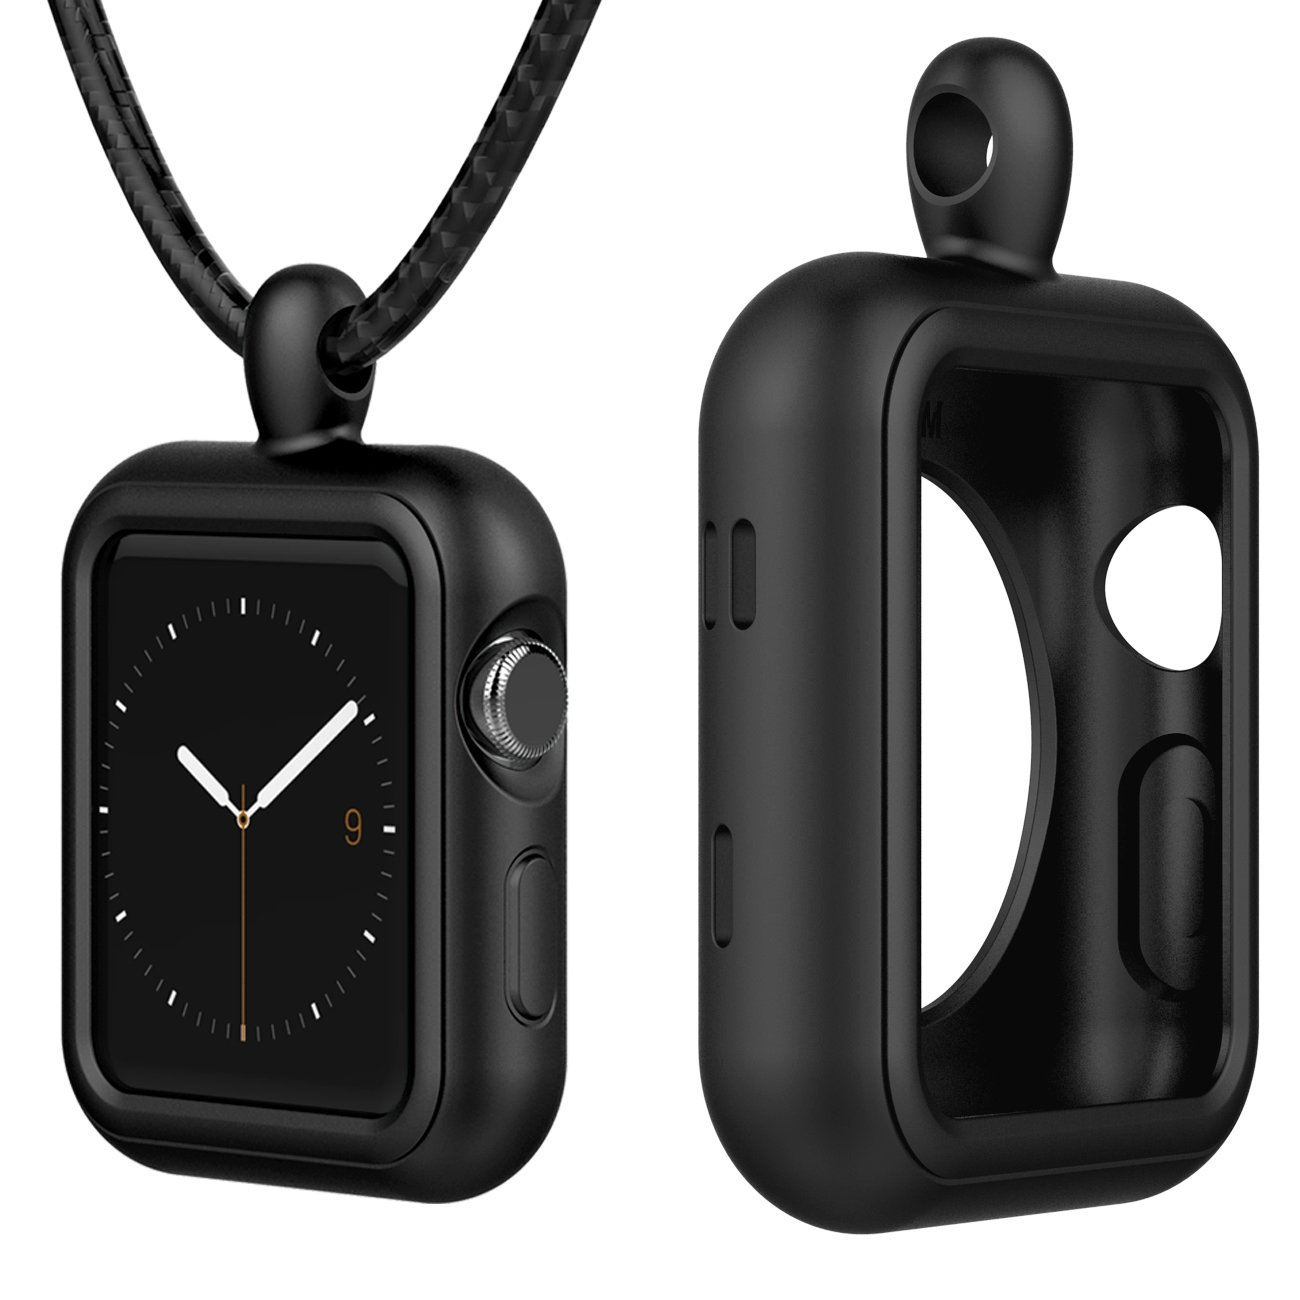 Lwsengme Compatible with Apple Watch Pendent Case with Necklace Clip, Replacement Accessories Compatible with Apple iWatch Series 3/2/ 1/Nike+ 38mm,42mm by Lwsengme (Image #1)